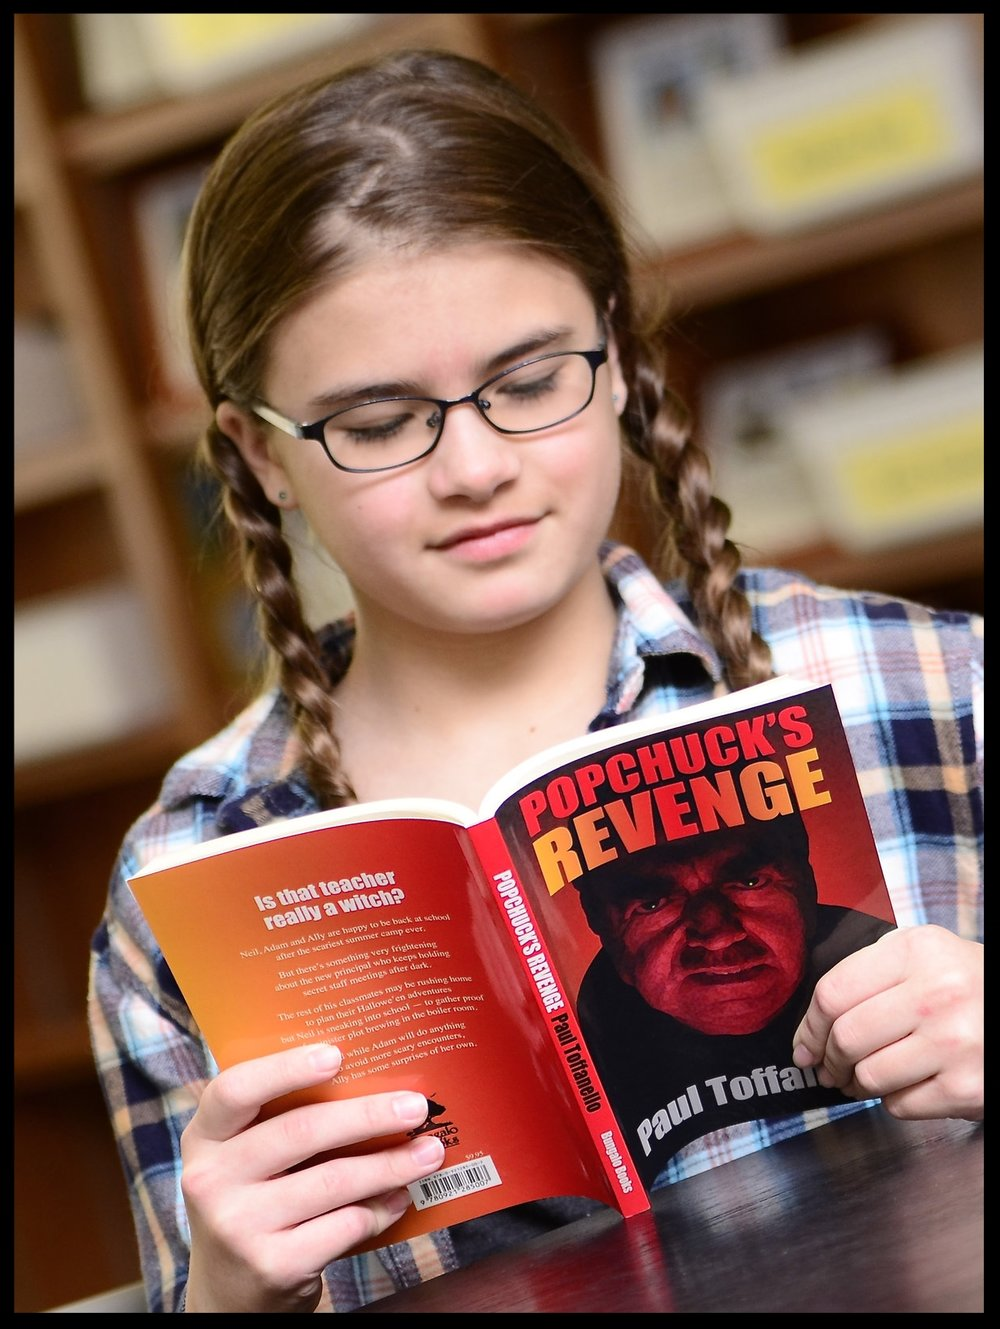 Book 2: Popchuck's Revenge - Neil, Ally and Adam are happy to be back to school after the scariest summer camp ever! But there's something very frightening about the principal and some of the teachers who keeps holding secret staff meetings after dark. The rest of their classmates may be rushing home to plan their Halloween adventures, but Neil and his friends sneak into school to gather proof of a sinister plot brewing in the boiler room!